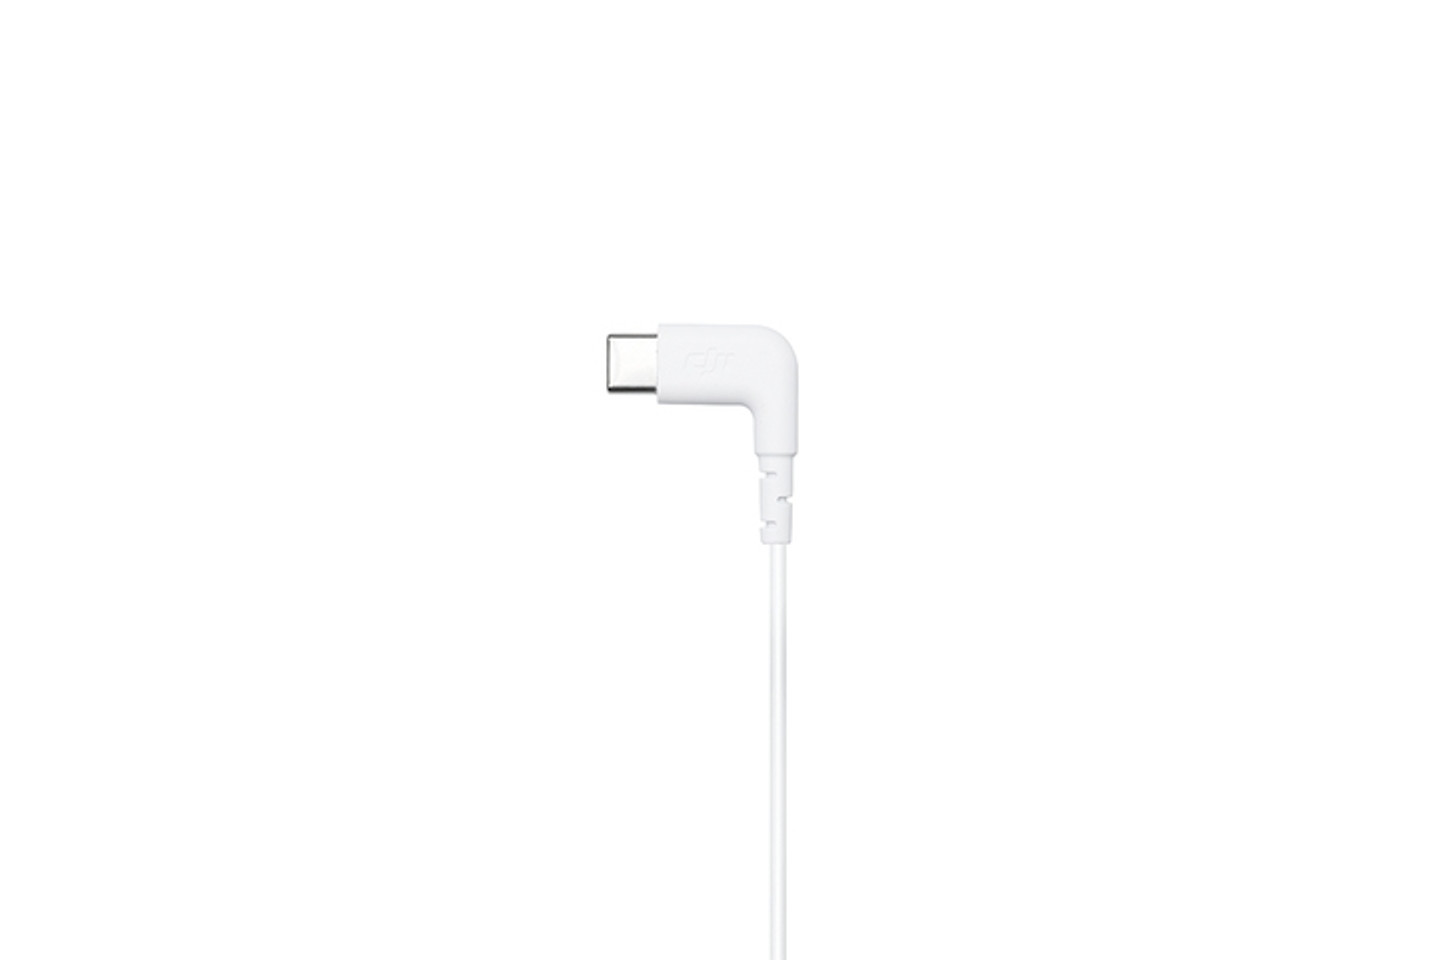 RC Cable (USB-C to USB)